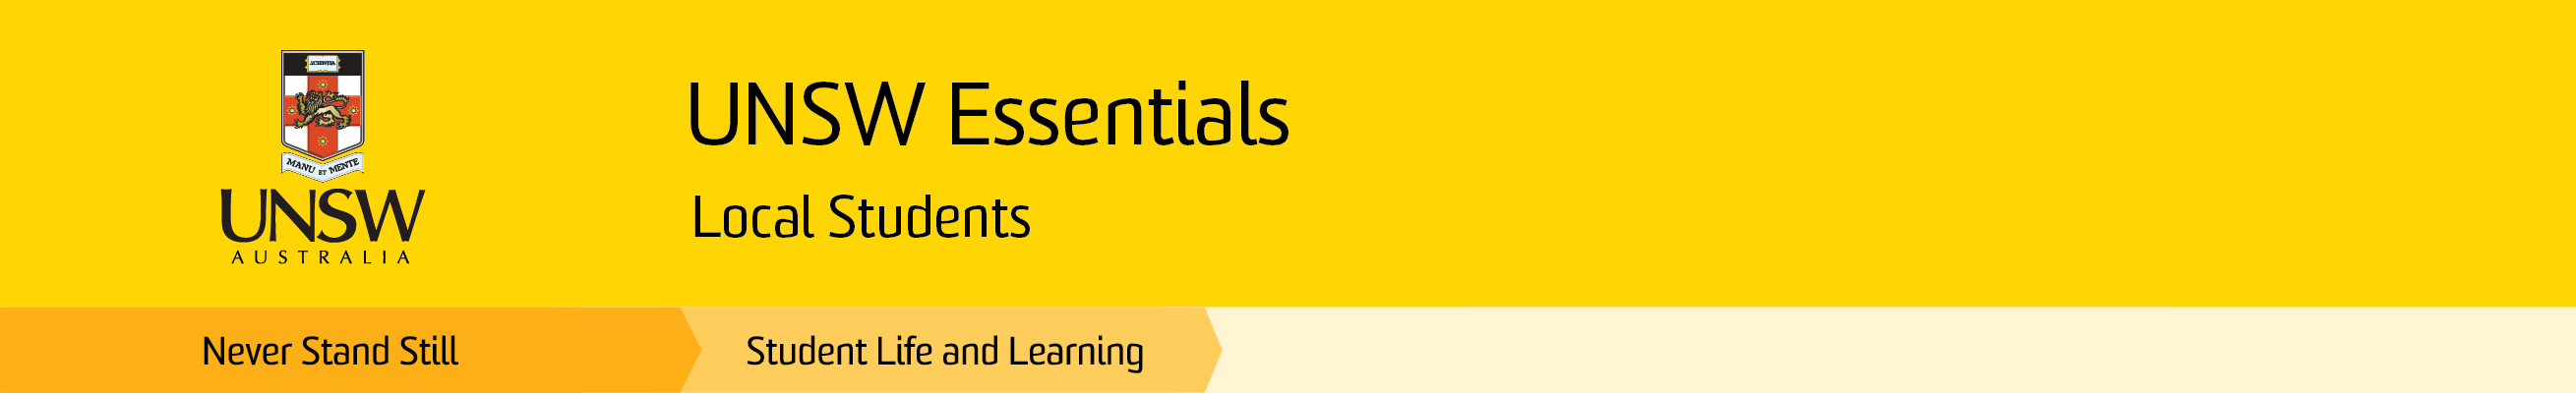 Course unsw essentials 7 modules for highly effective students accessing unsw essentials is easy the contents of each topic is clearly identified giving you flexibility to navigate the modules in a way that works for toneelgroepblik Gallery